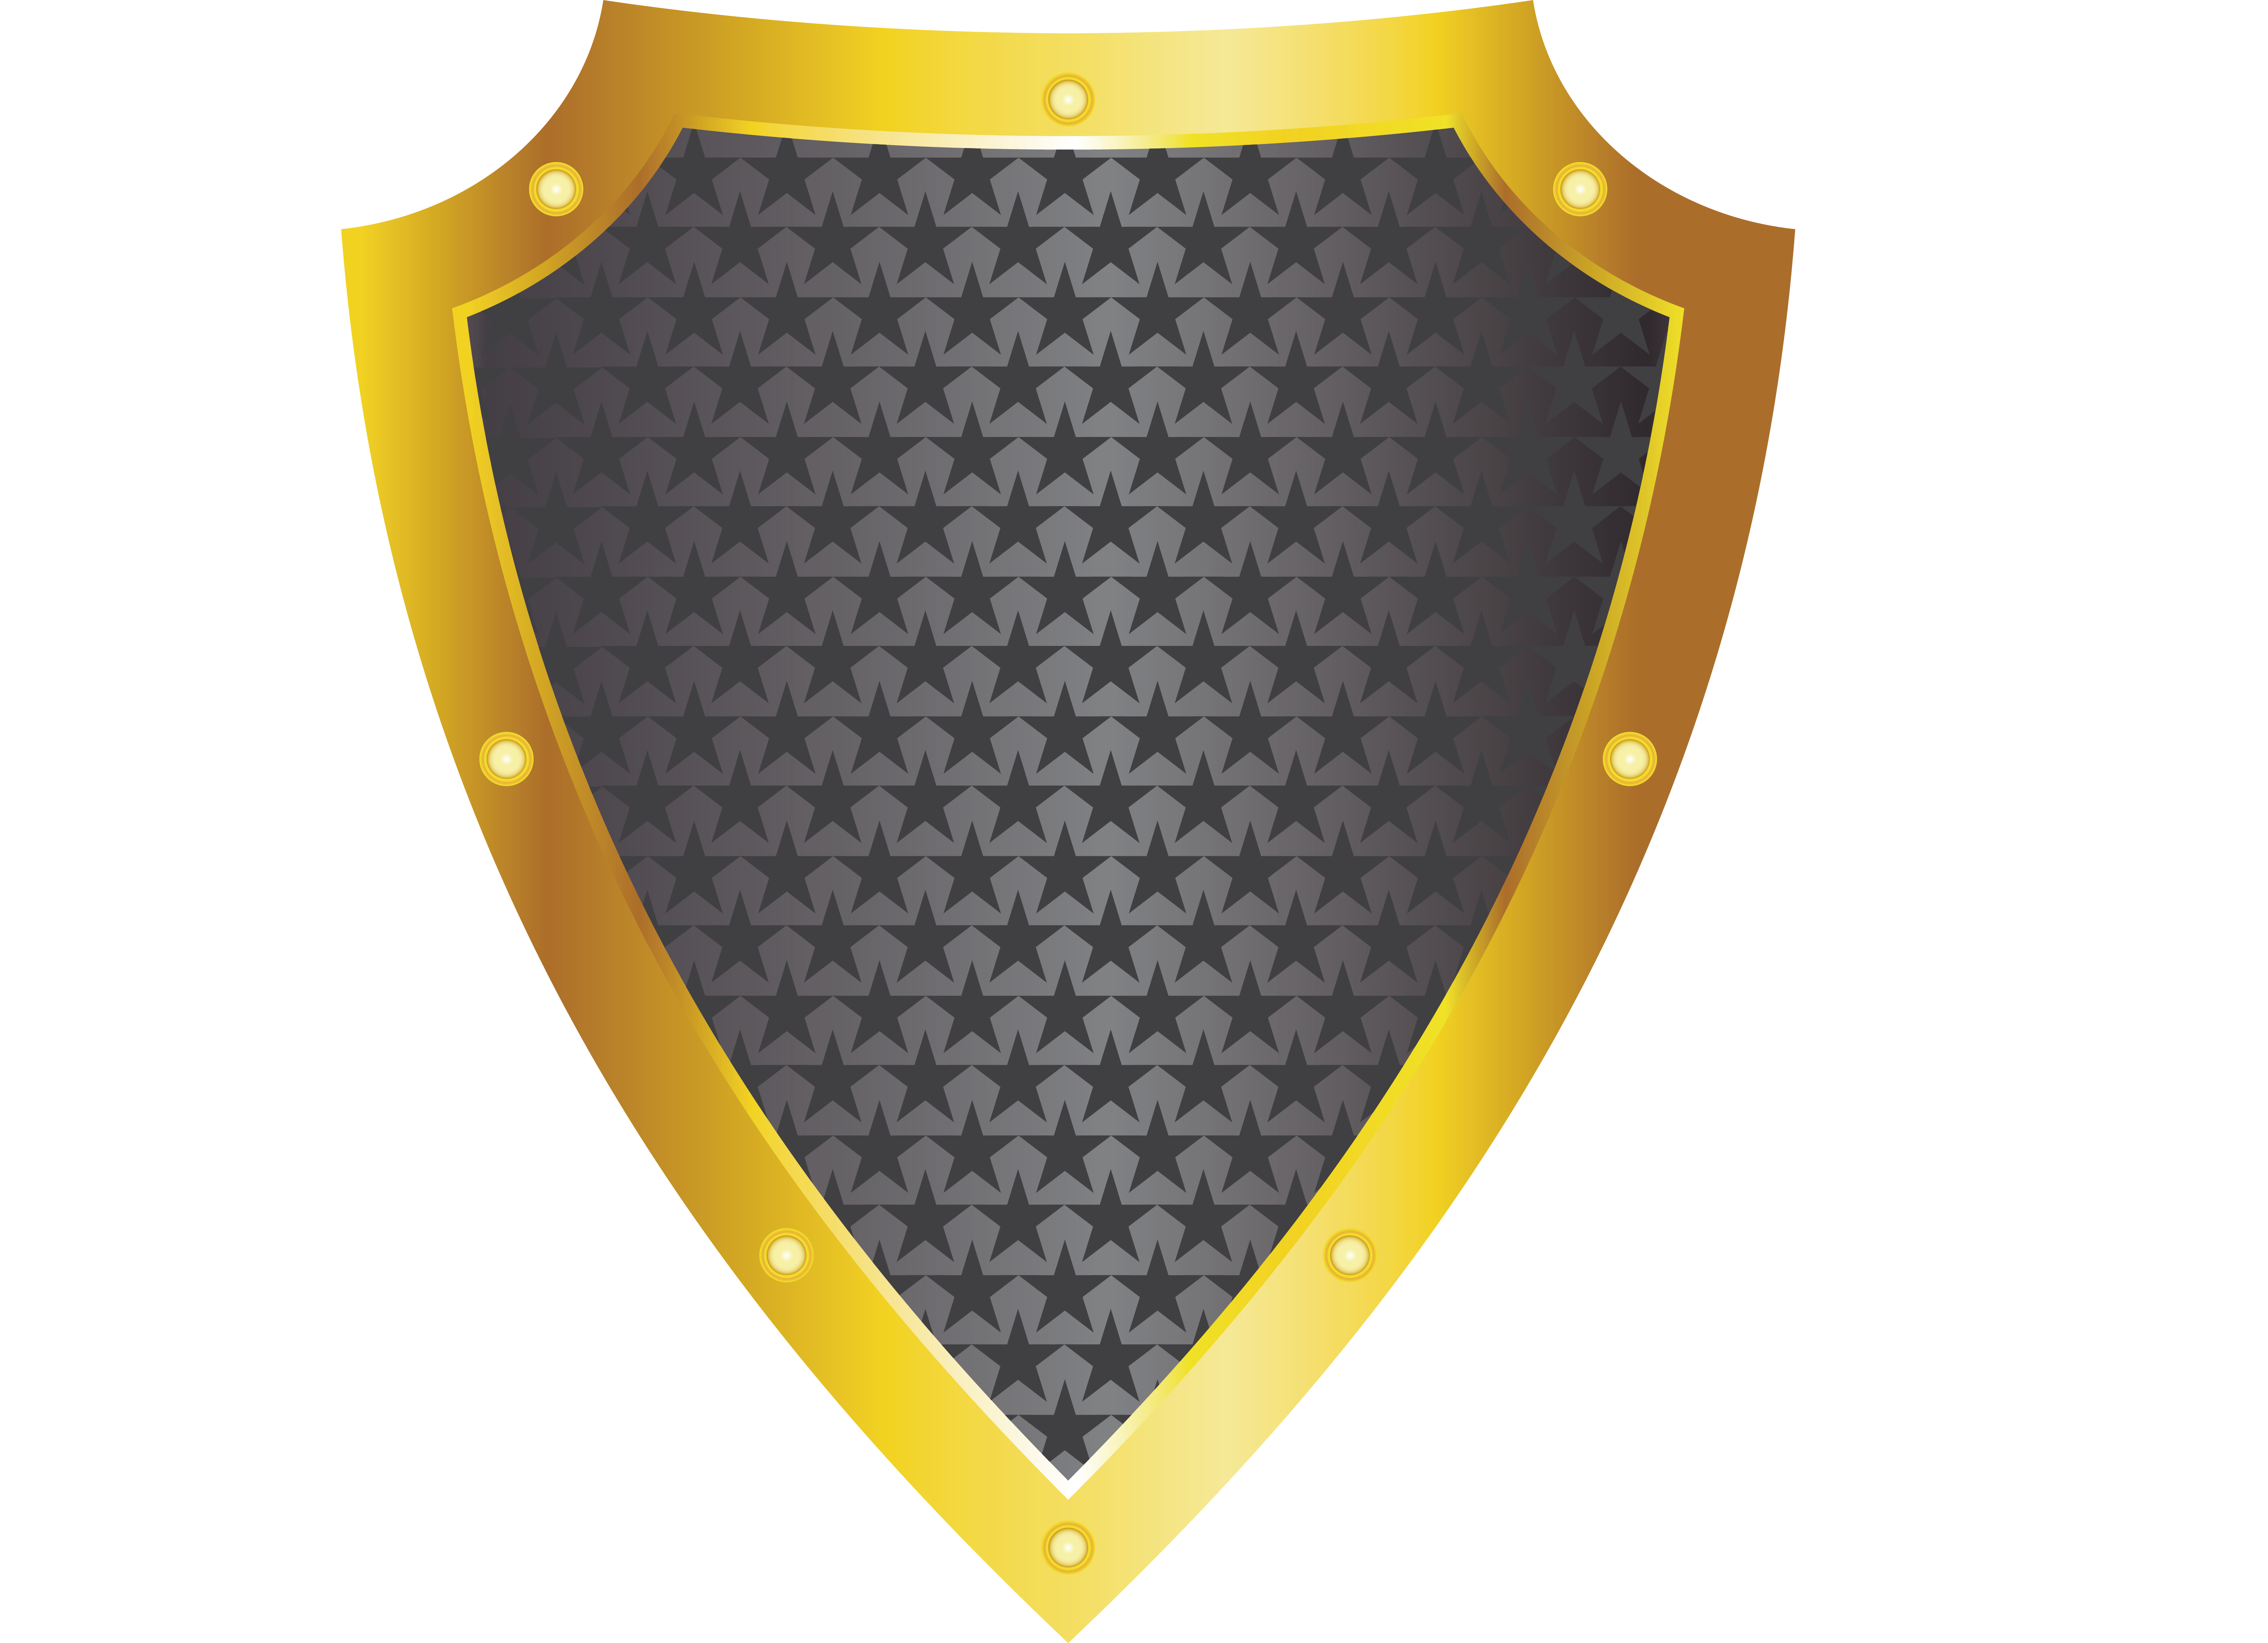 Download free hq png. Warrior clipart shield